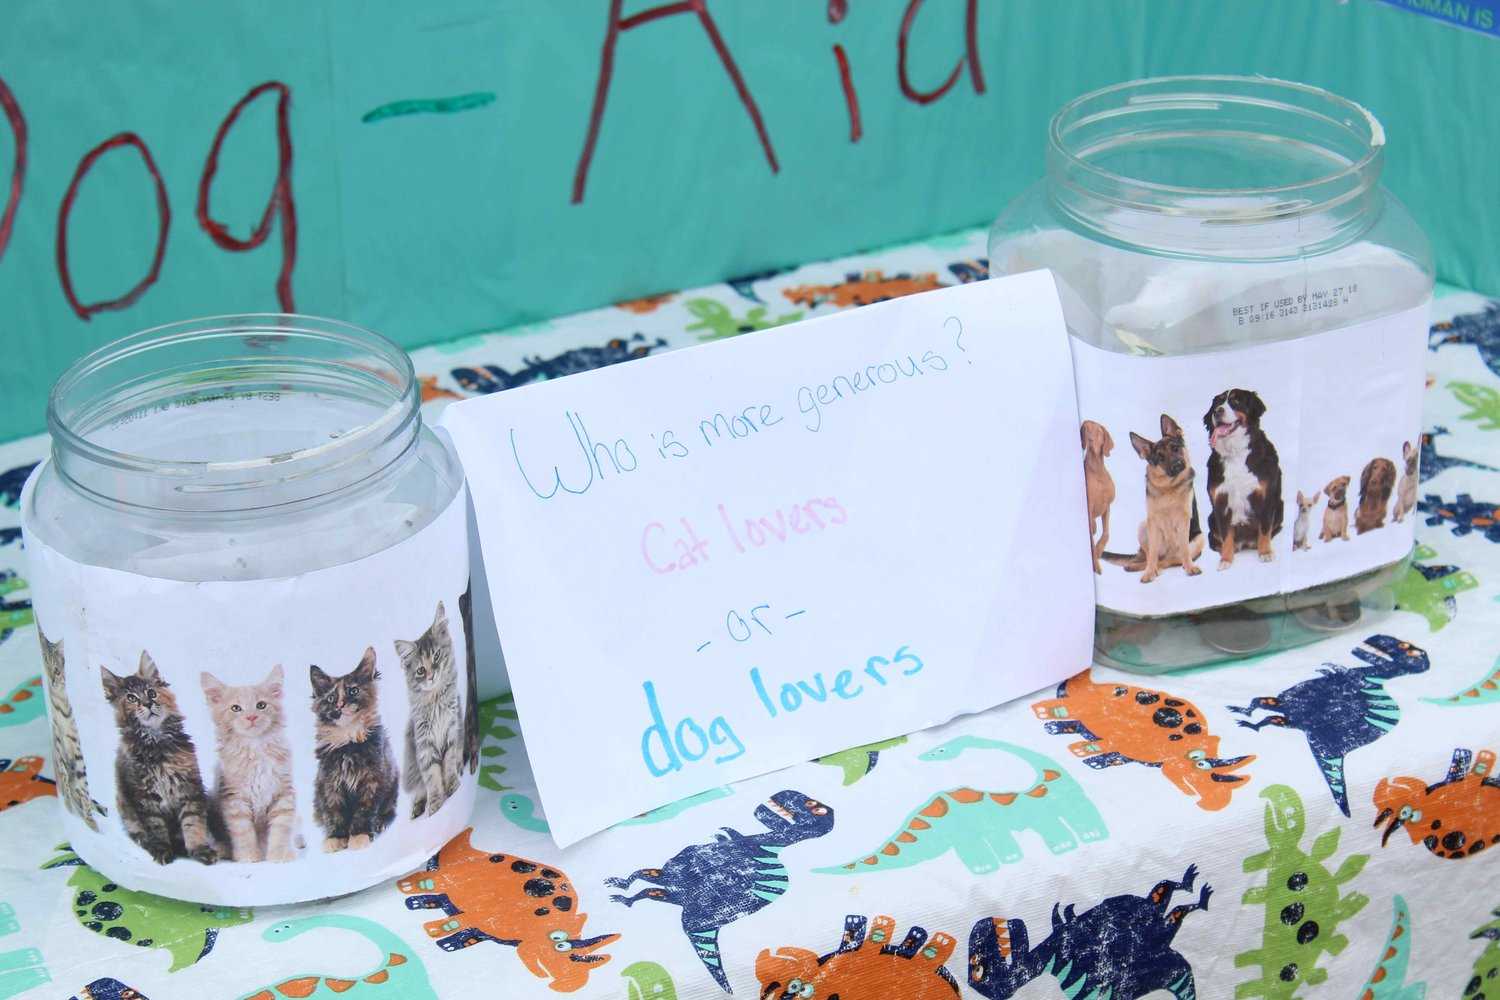 Tip jars at Myah Kapavik's lemonade stand were split between dog and cat lovers to see who is more generous. Cat tippers beat dog tippers in a close race during Lemonade Day on Saturday.